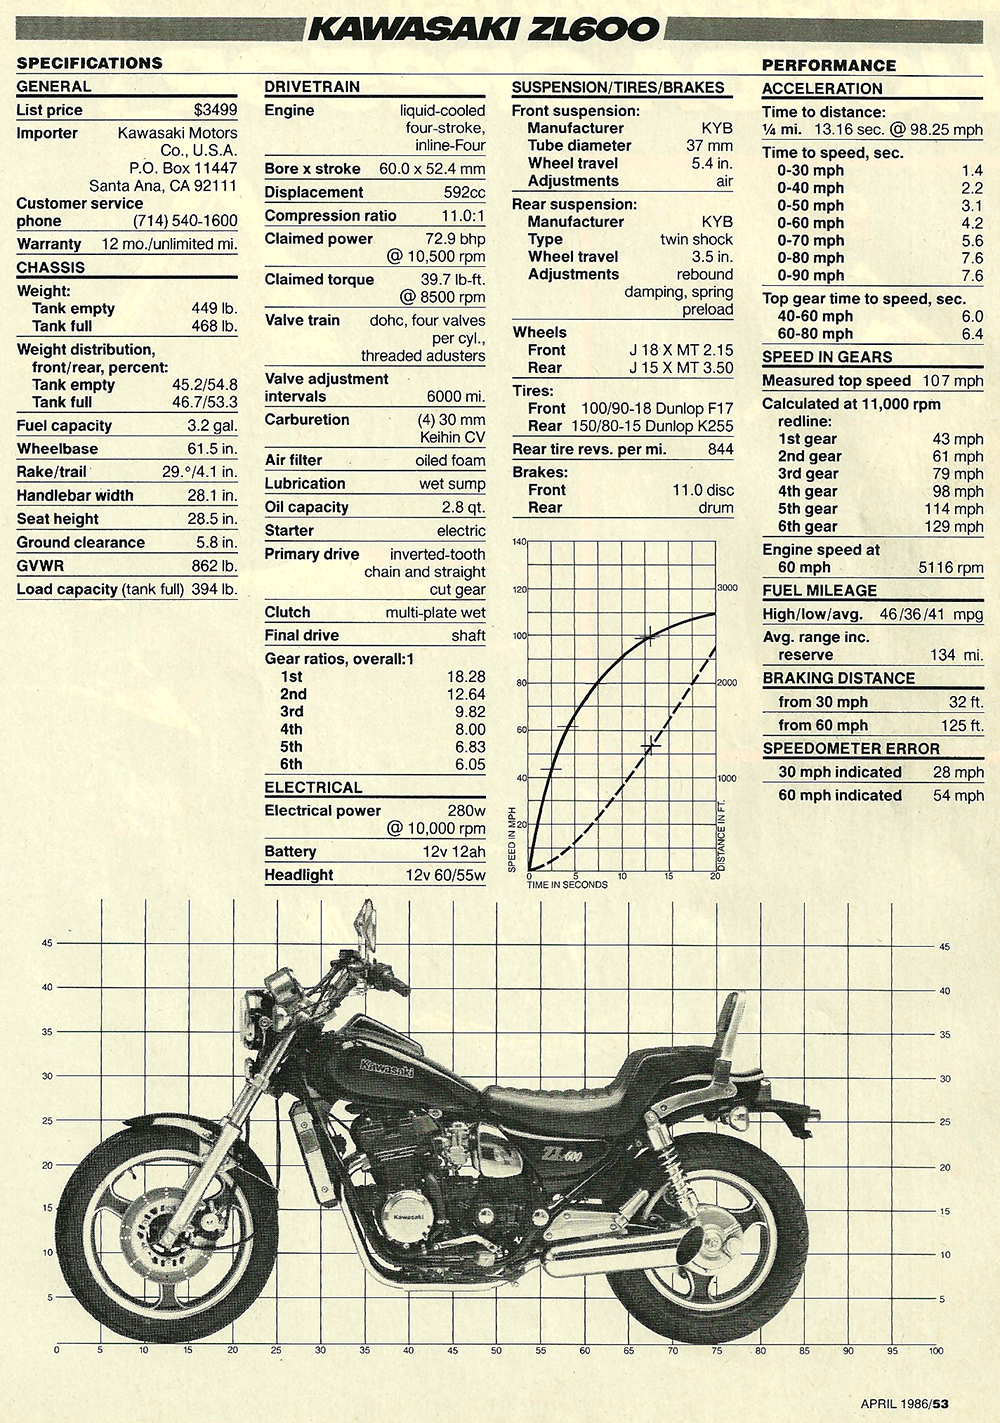 1986 Kawasaki ZL600 Eliminator road test 06.jpg